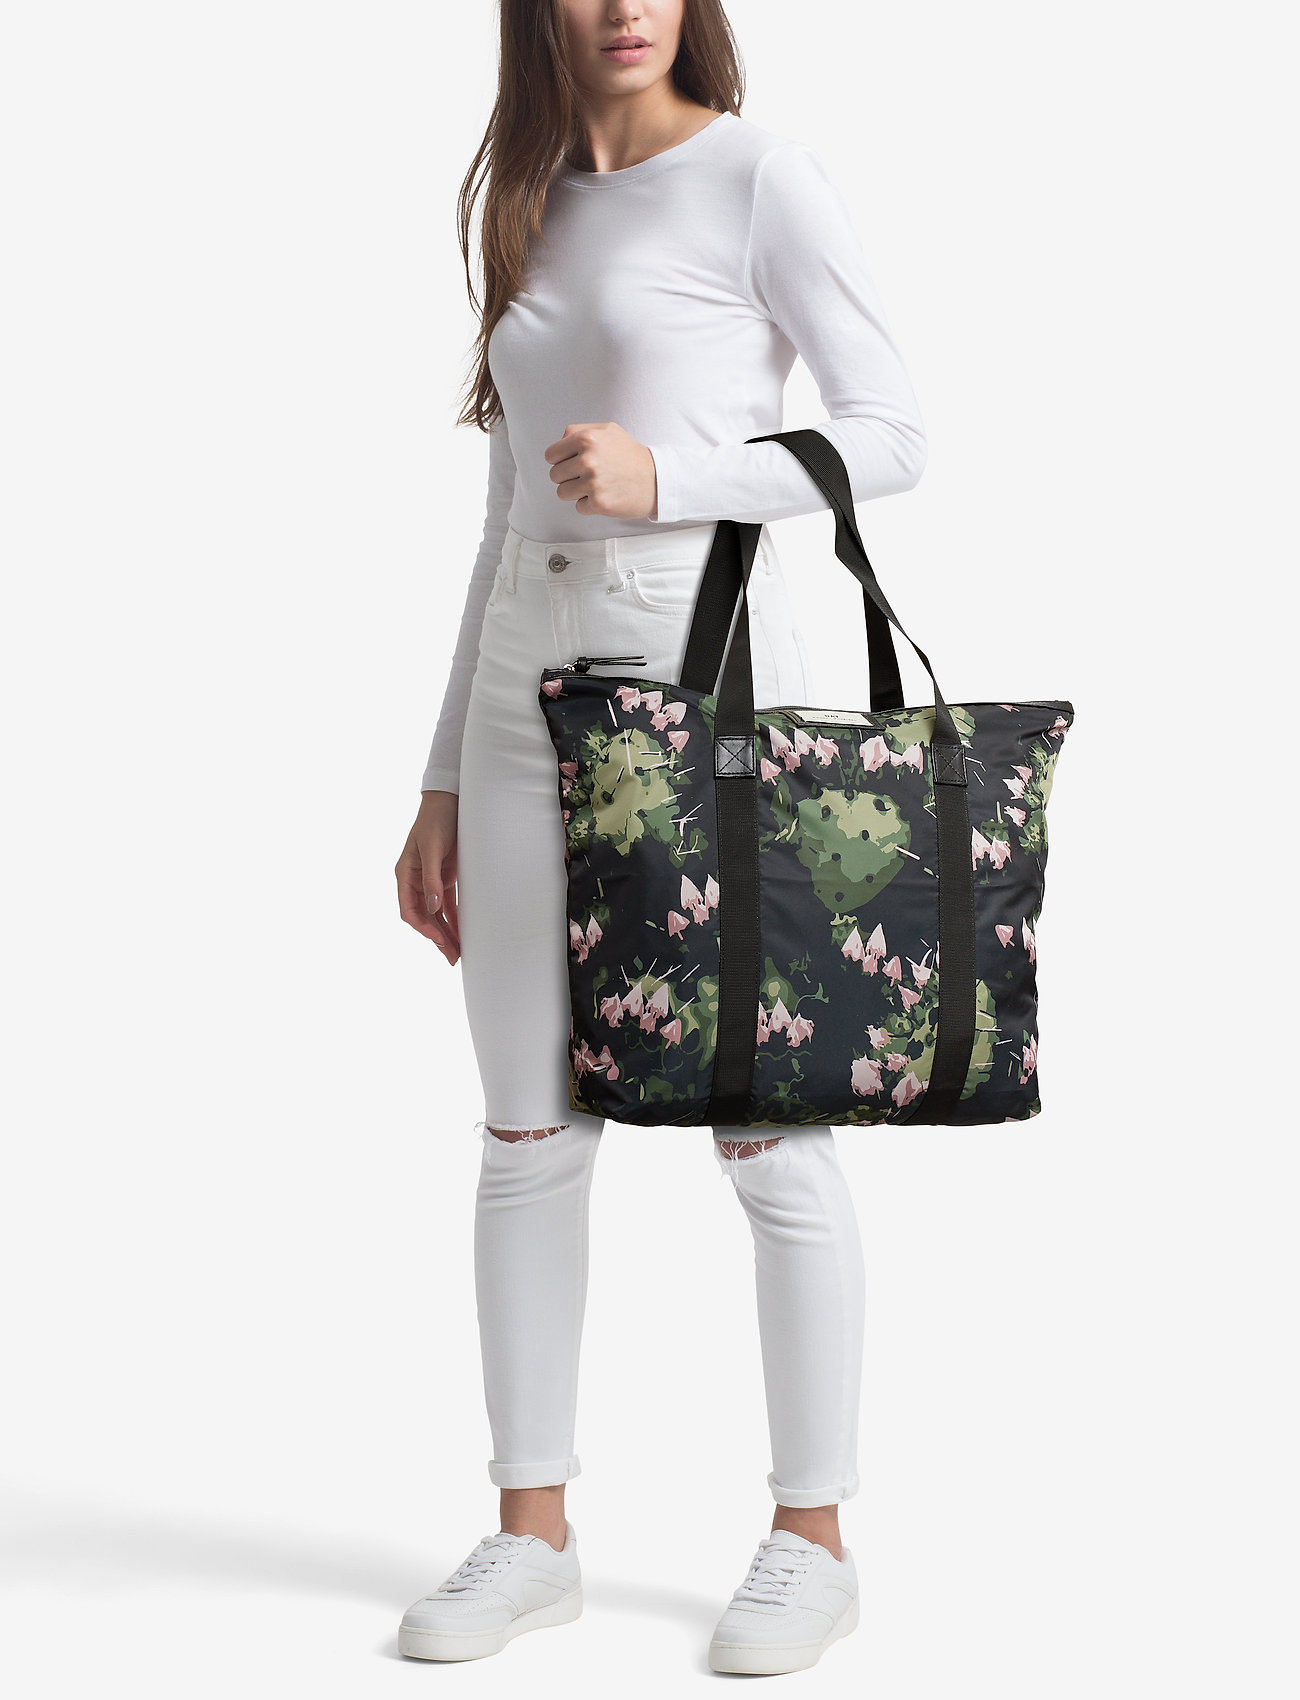 DAY et Day Gweneth P Cactus Bag